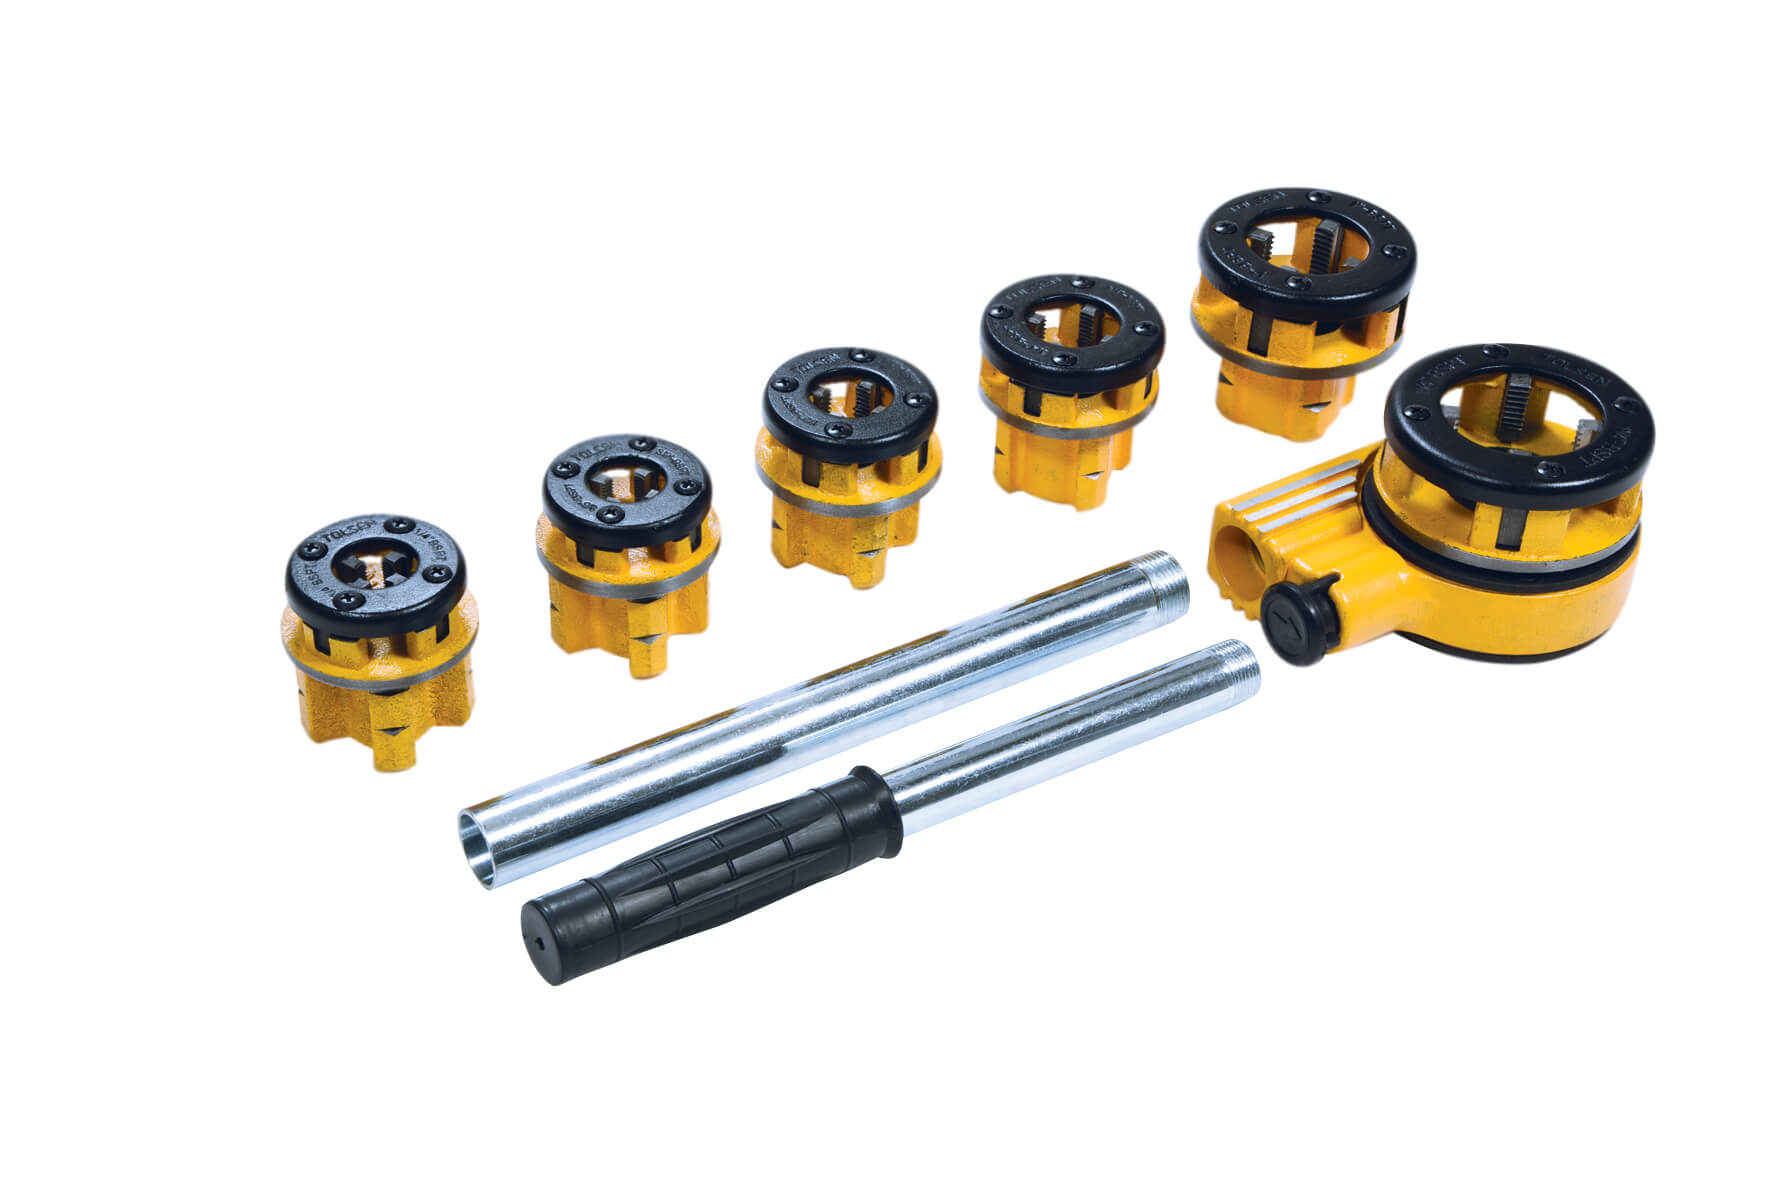 Ratchet Pipe Threading Set - 6pce